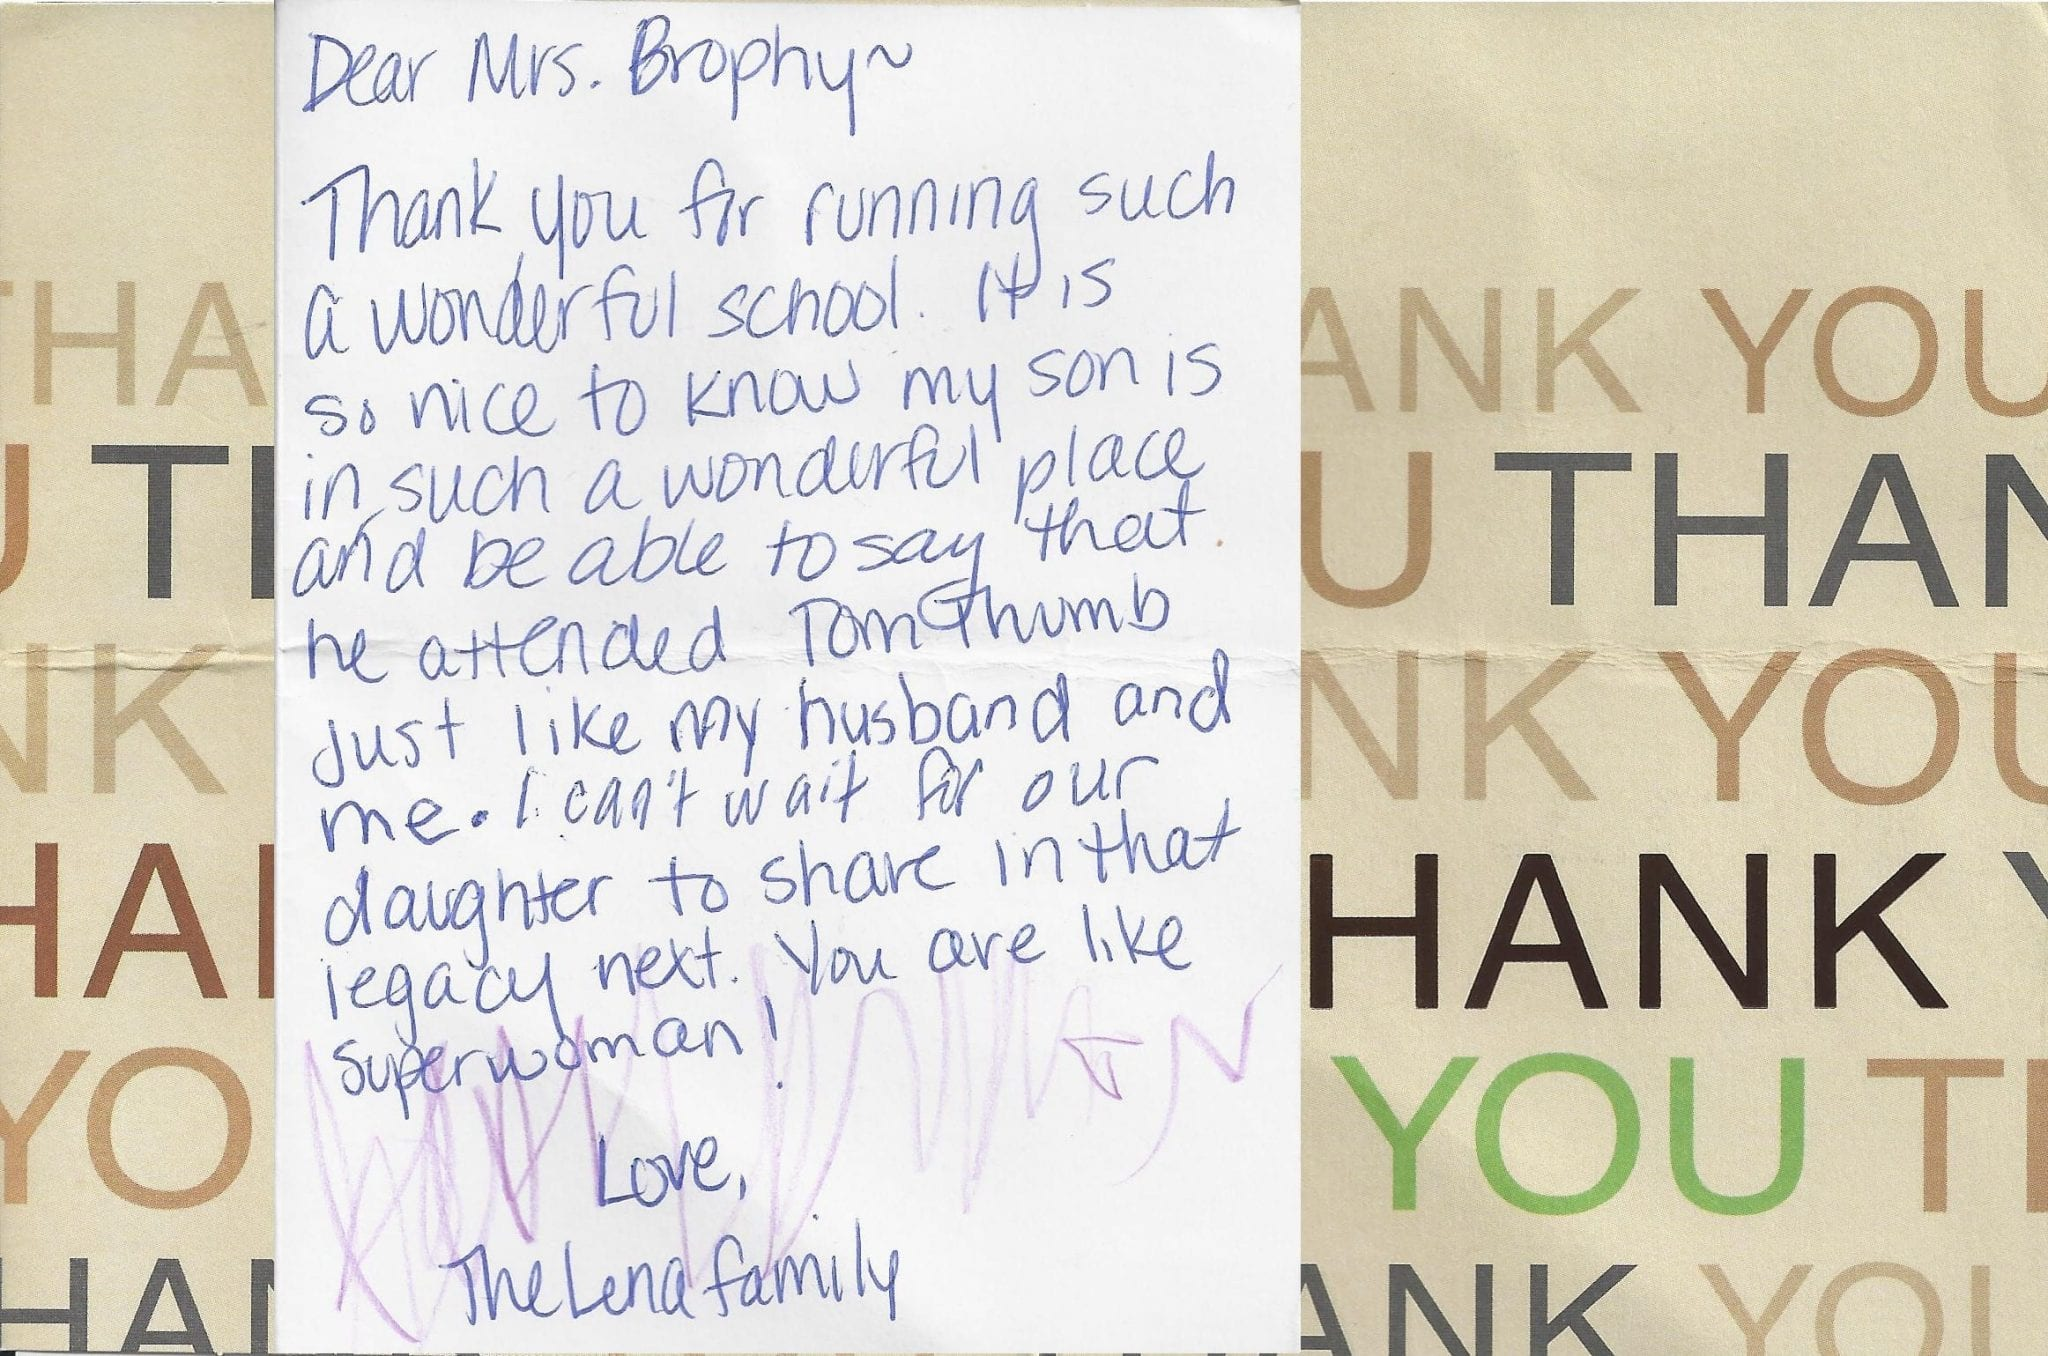 Tom Thumb Alumni Thank You Note